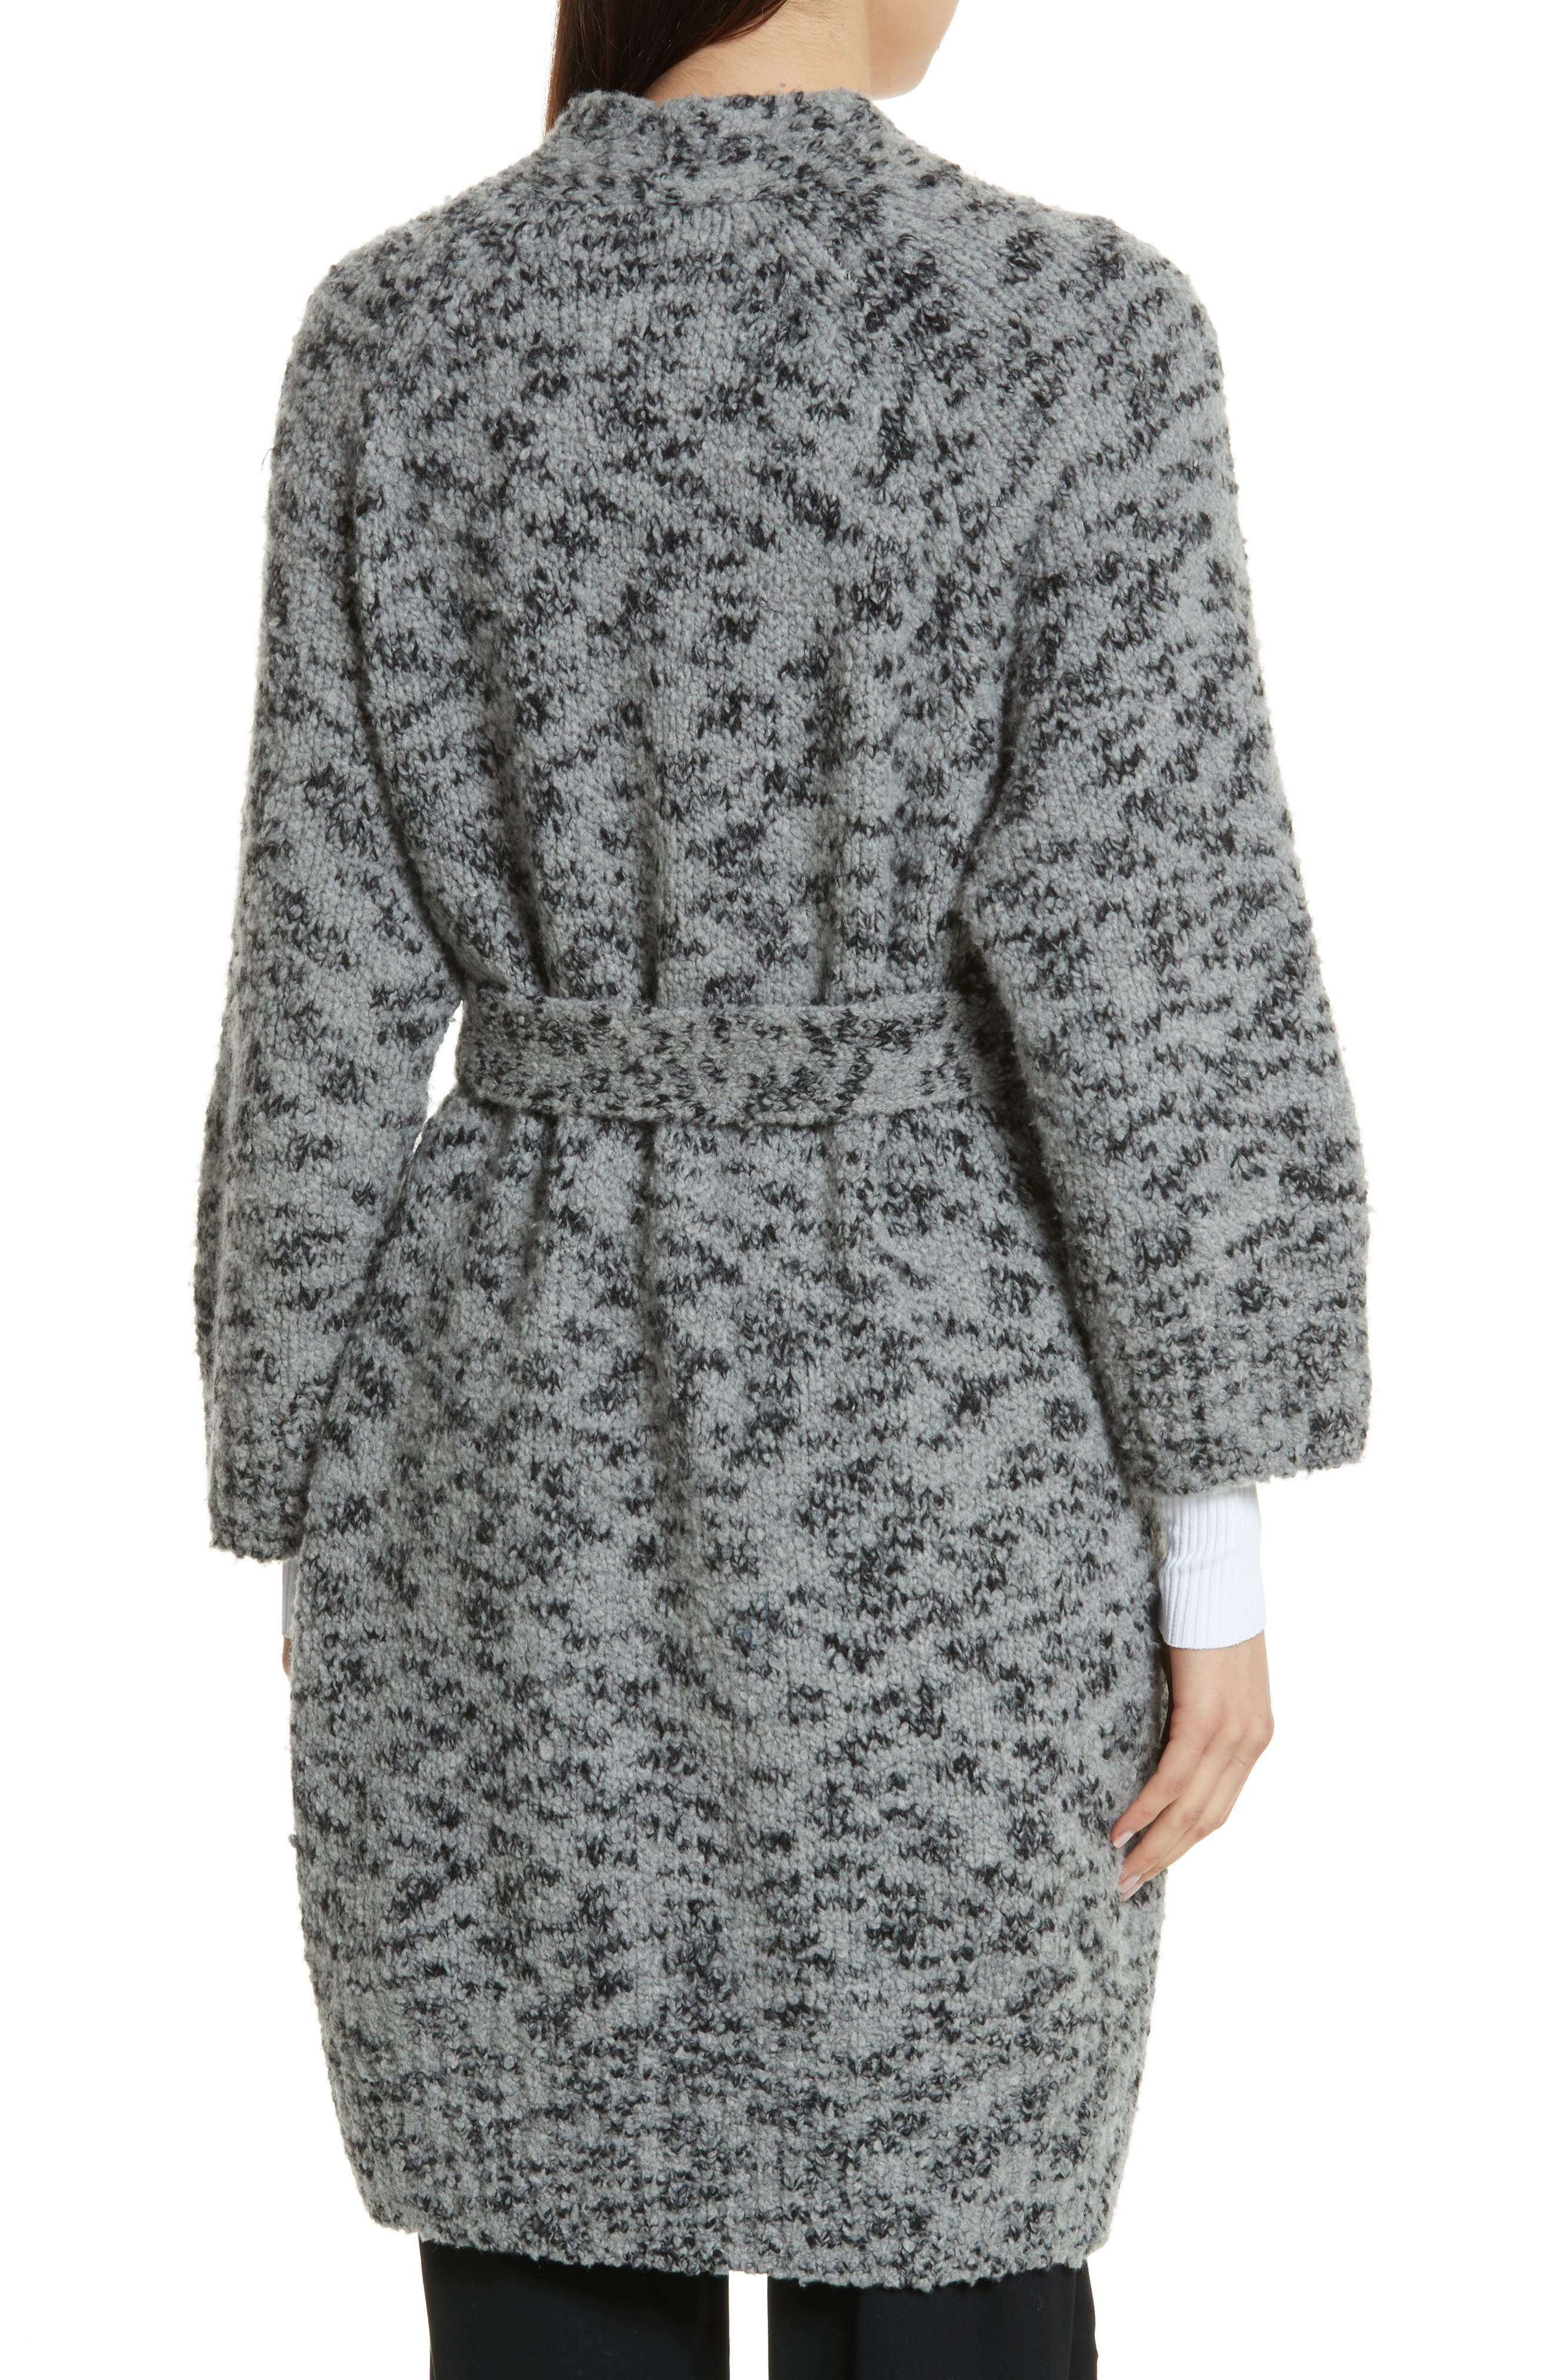 Textured Wool Blend Cardigan,                             Alternate thumbnail 2, color,                             Grey/ Black